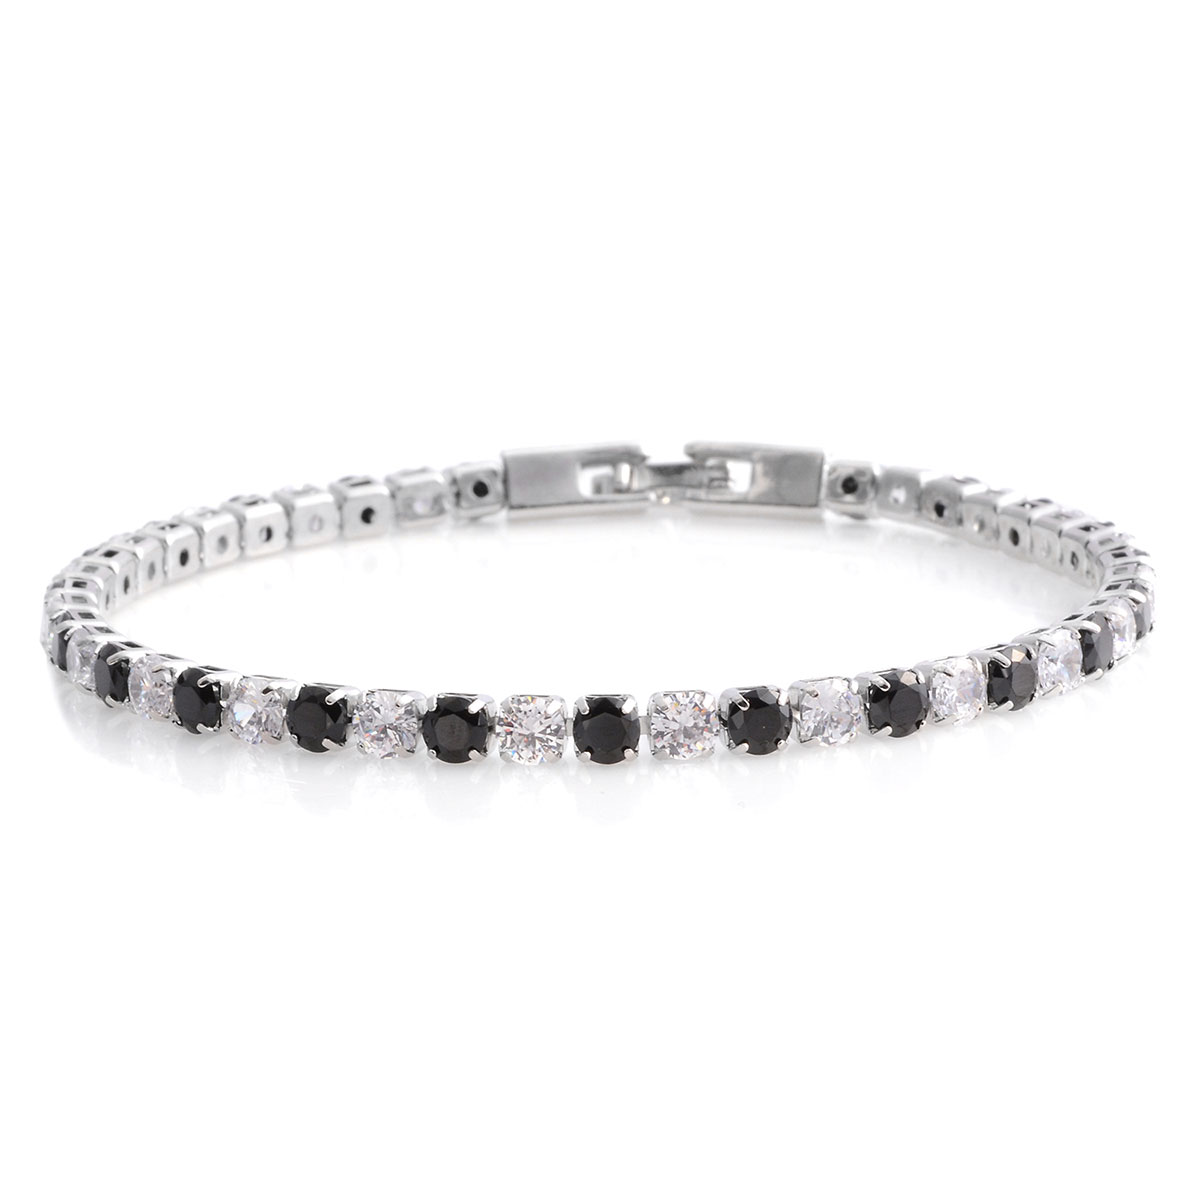 Simulated Black And White Diamond Tennis Bracelet In Silvertone 8 00 7 92 Ctw